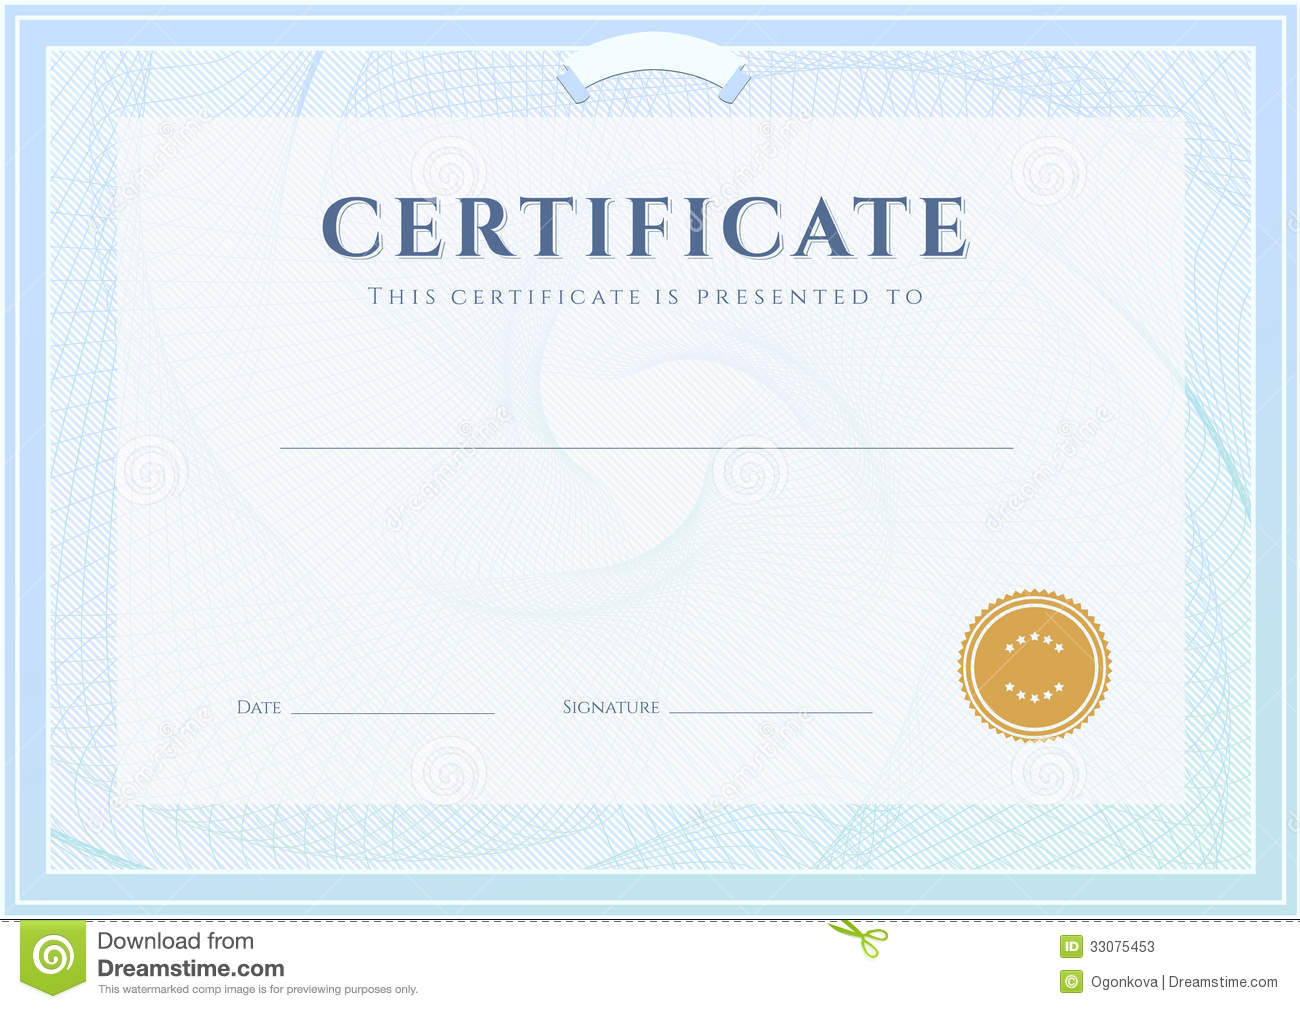 certificate of authenticity template word certificate of authenticity template microsoft word new collection